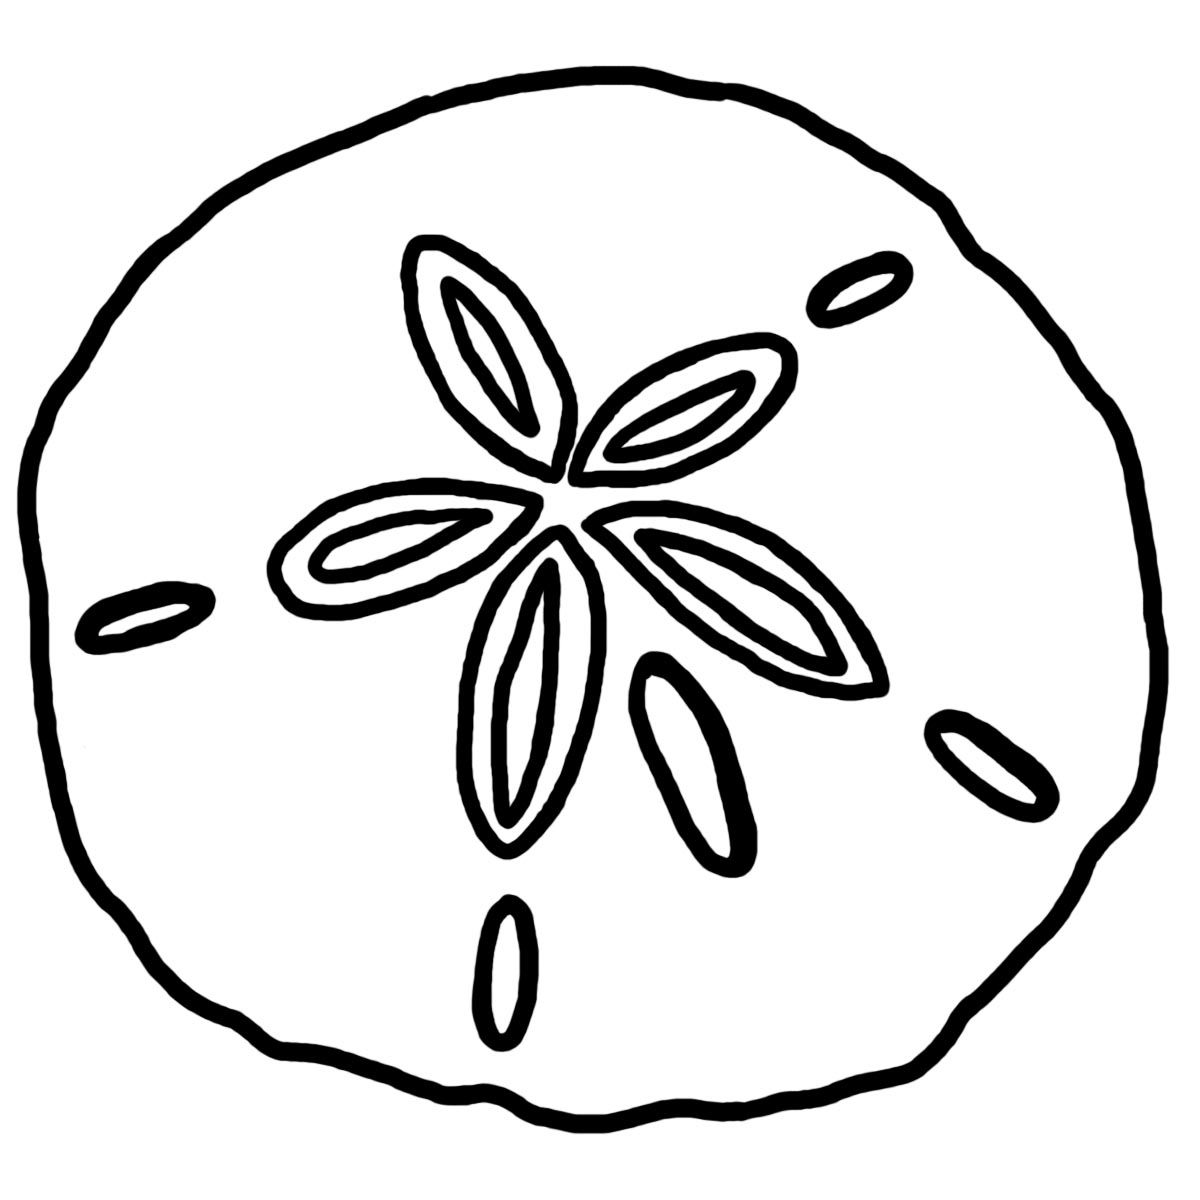 Shell clipart sand dollar. Beach drawings art custom